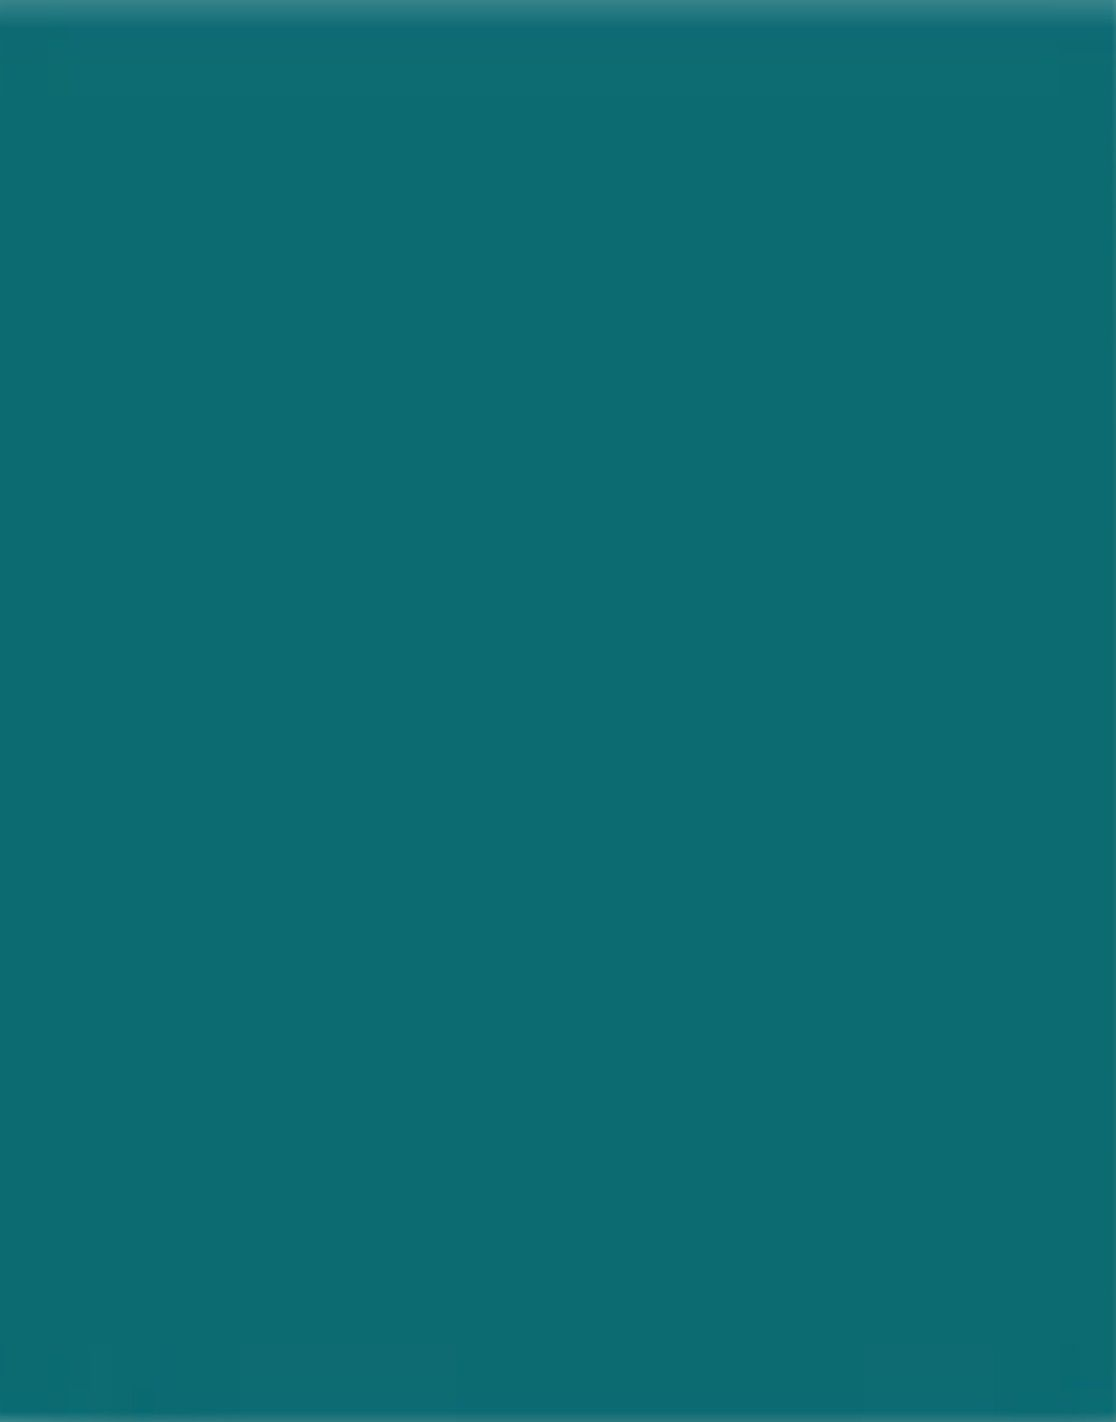 Dark Teal teal is interpreted so many wayscompanies it's impossible to